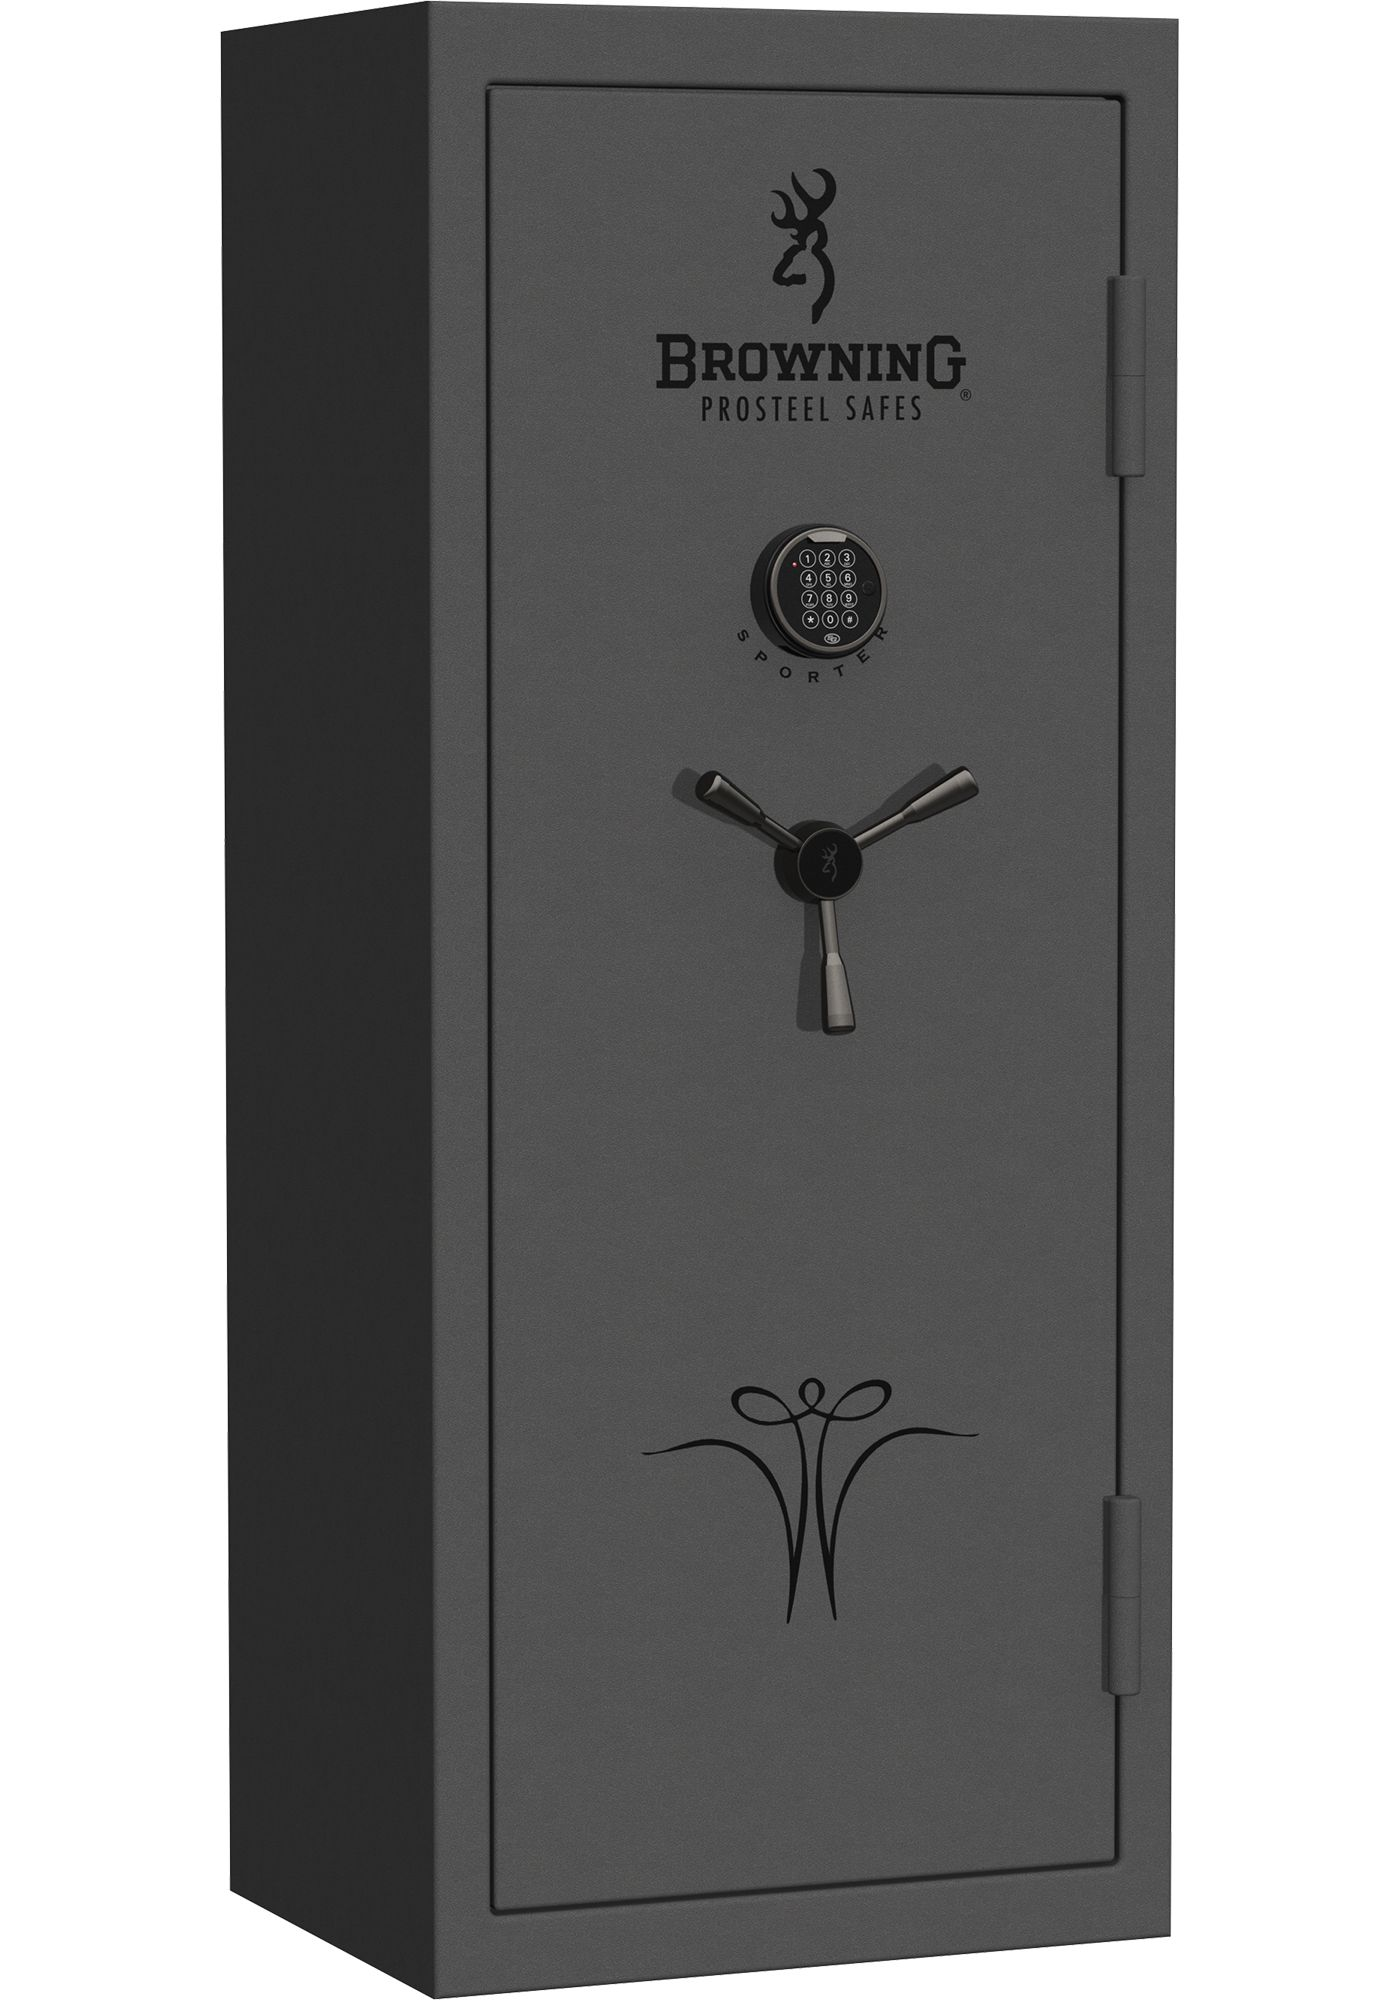 Browning Sporter Closet 20-Gun Fire Safe with Electronic Lock